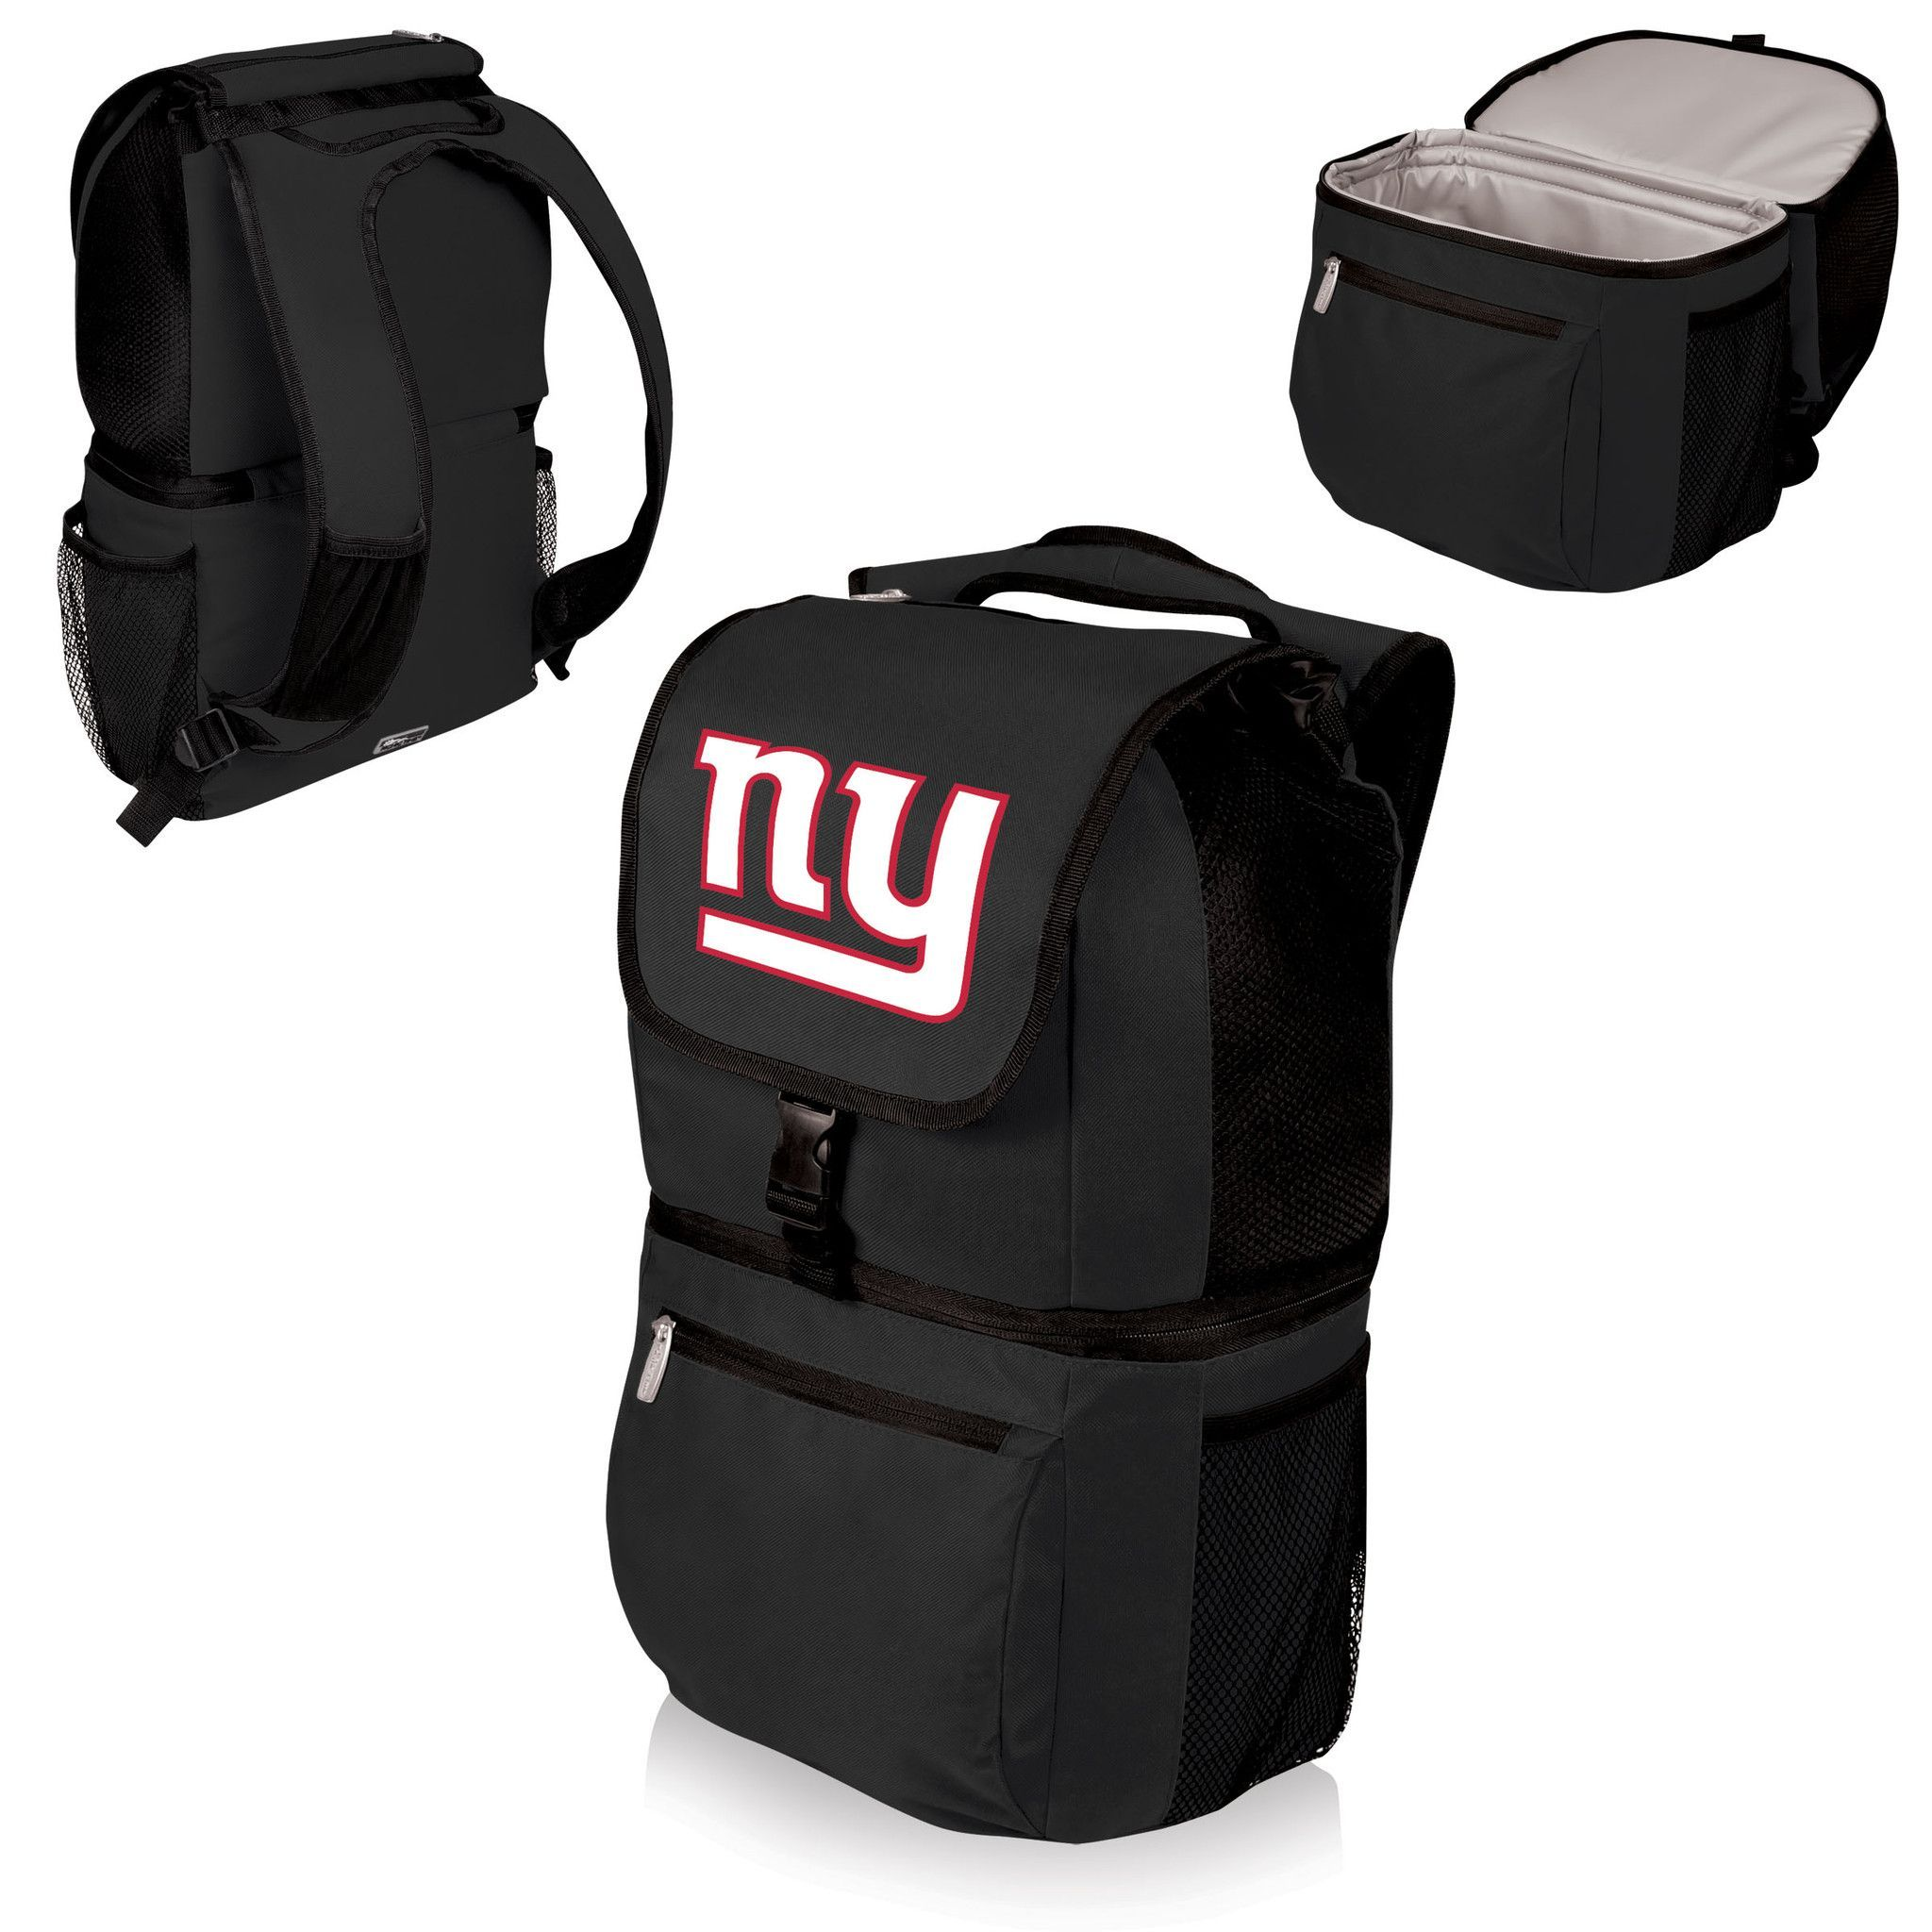 6bb422356472 Zuma Cooler Backpack - New York Giants